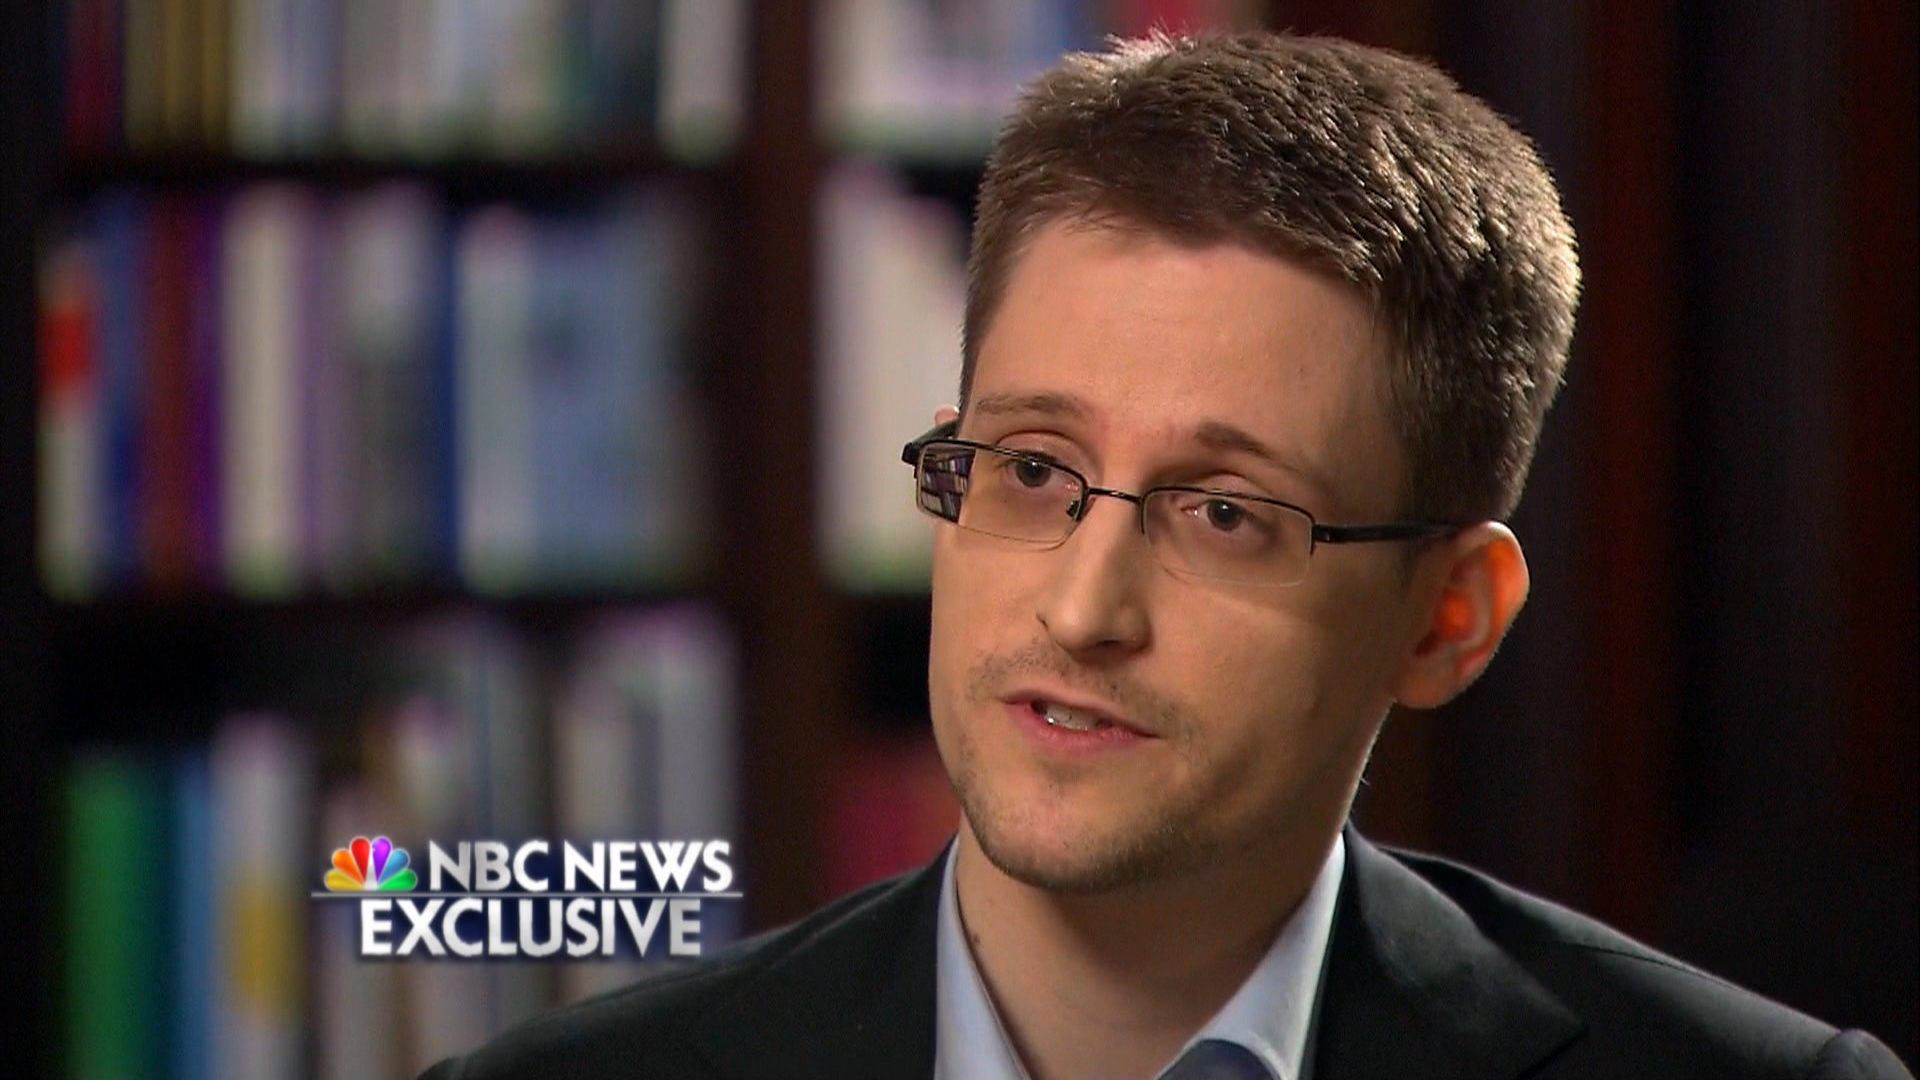 Snowden claimed to raise red flag before leak